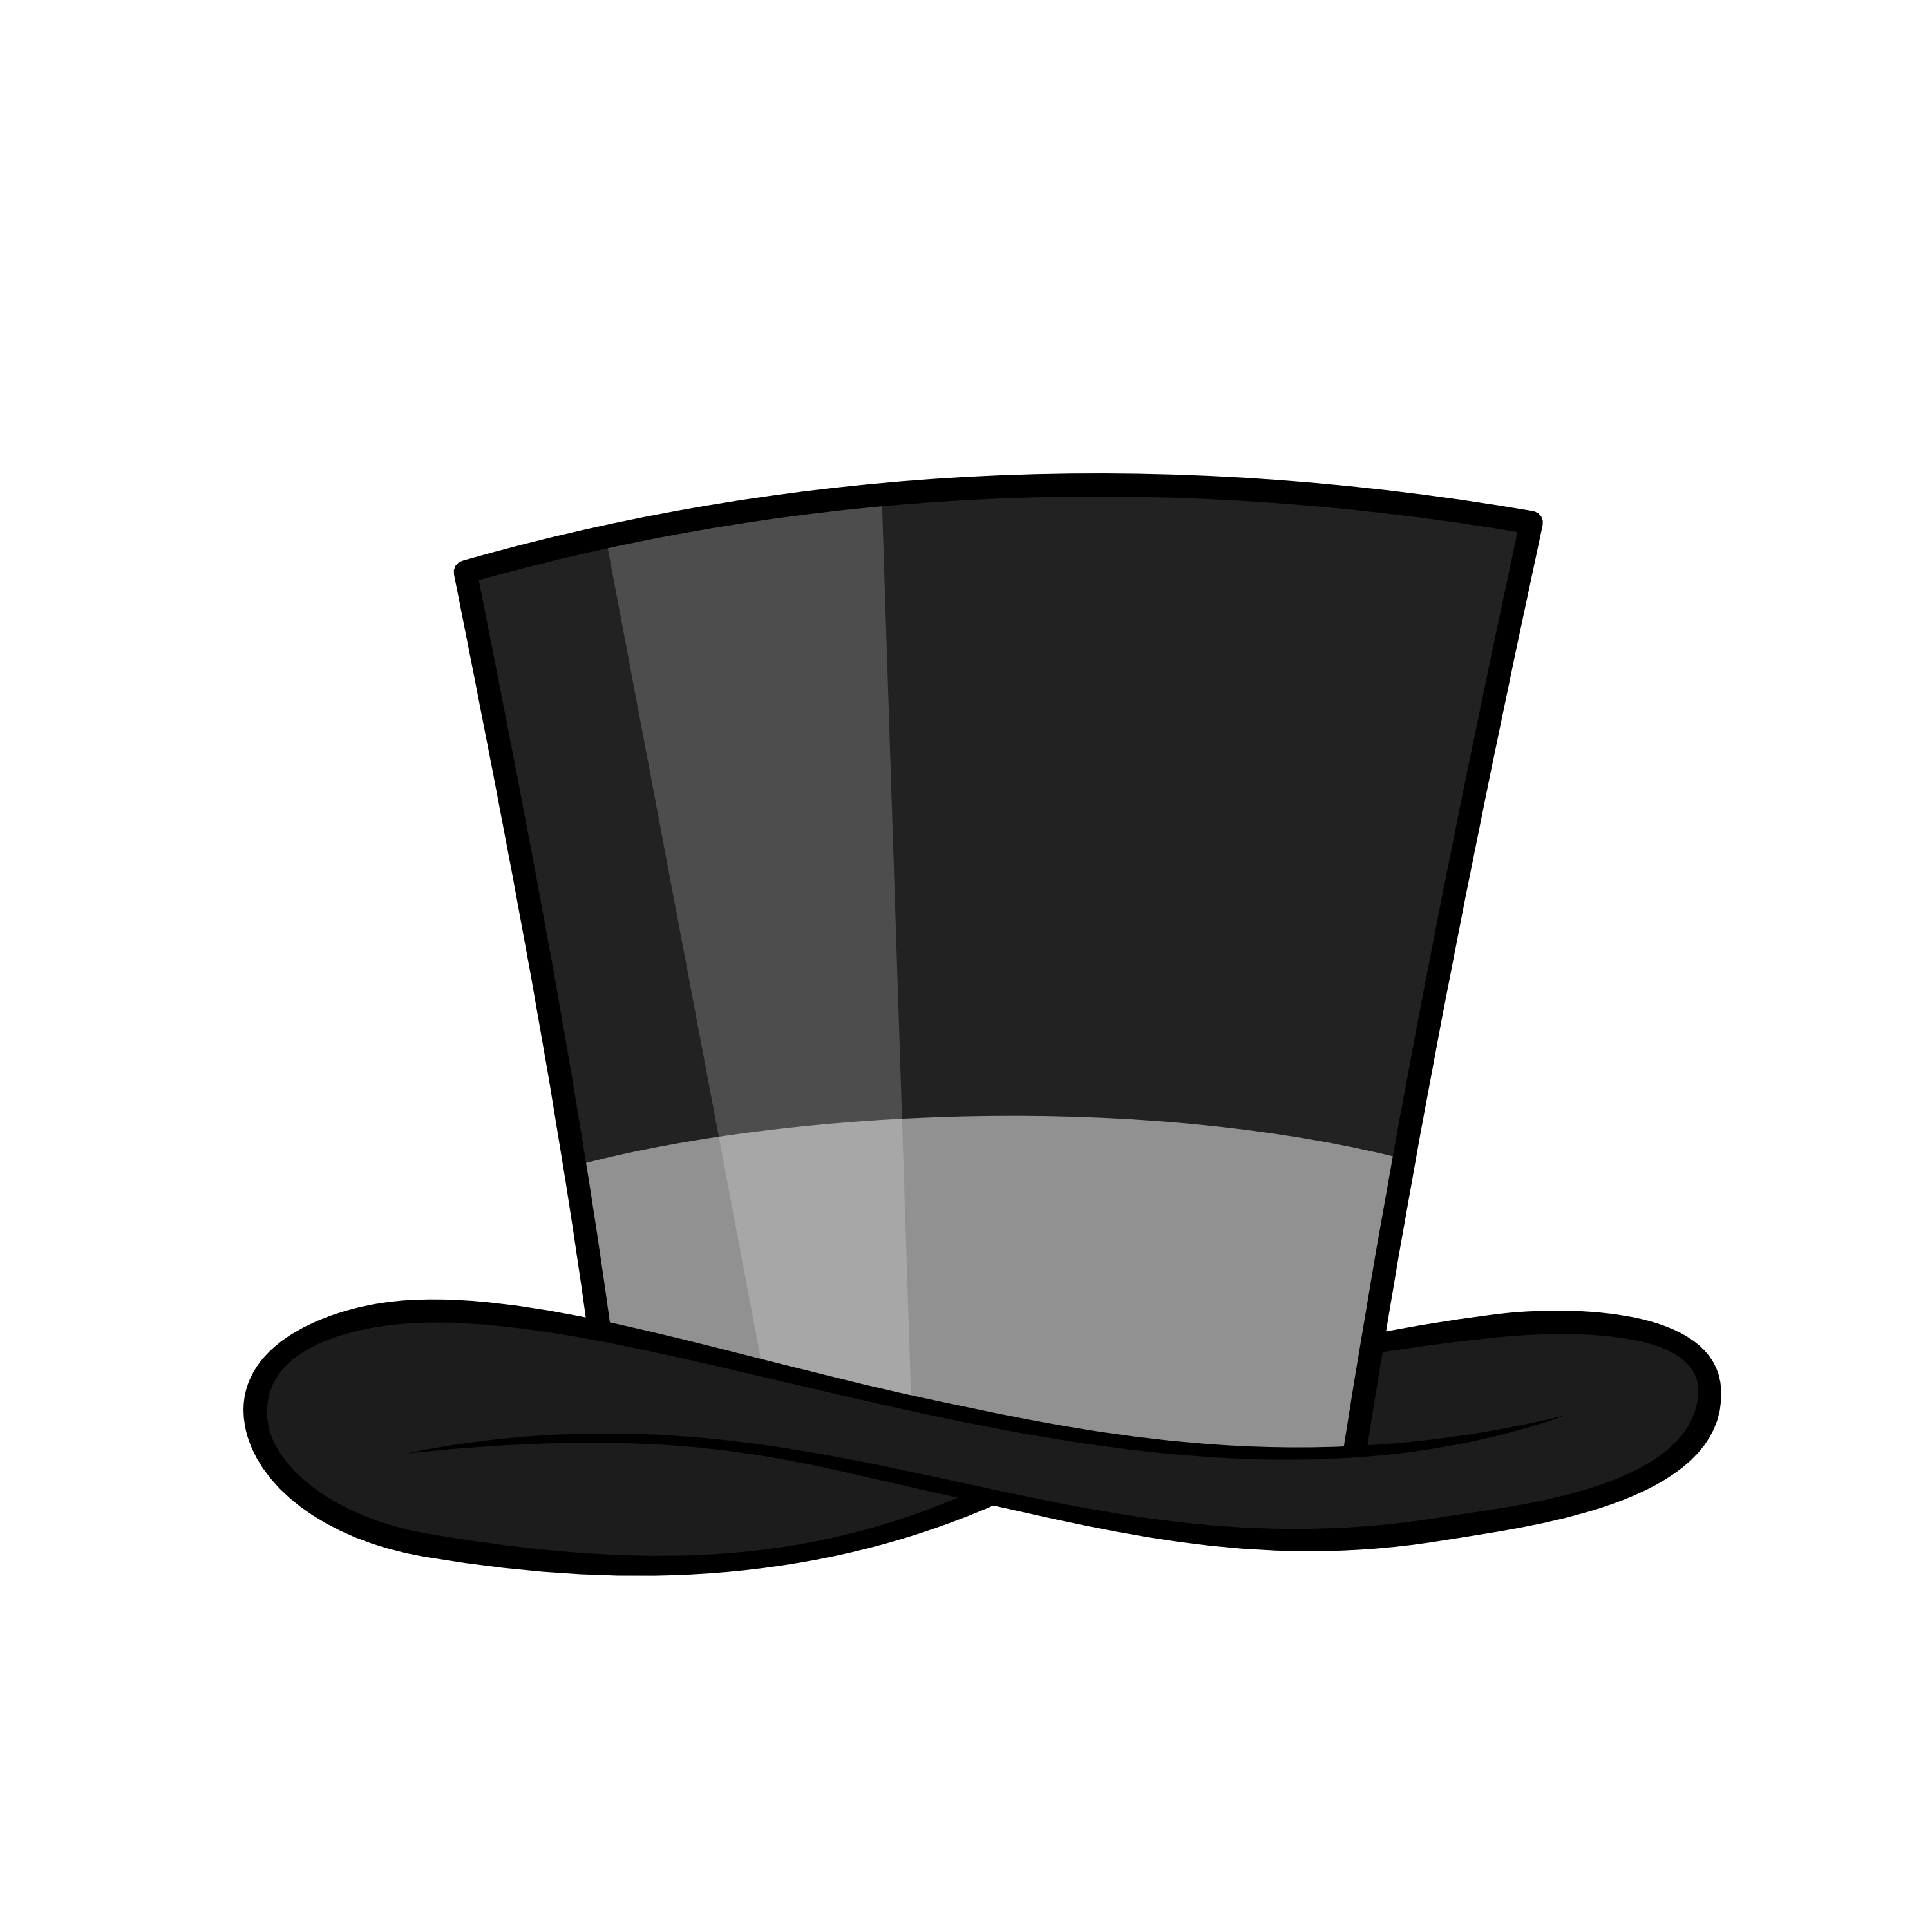 top hat clipart cute